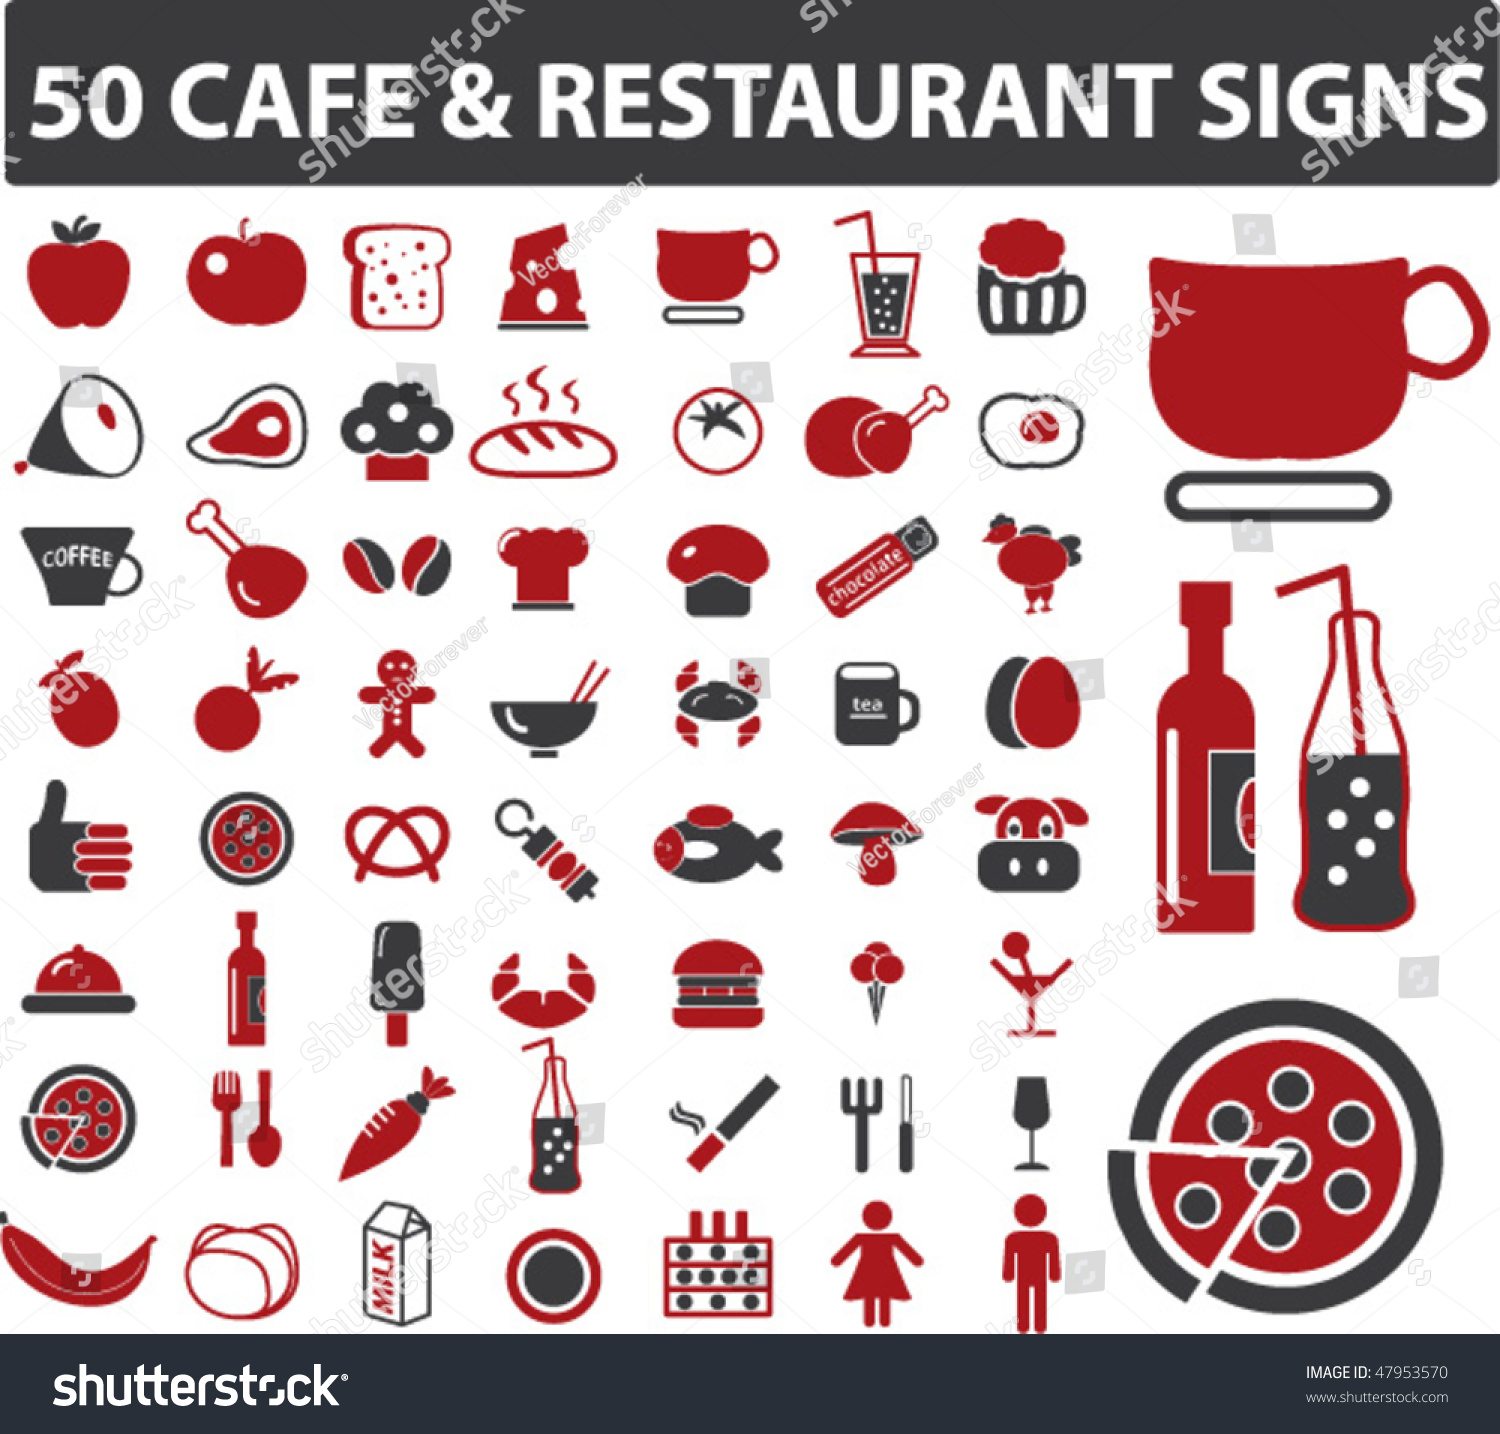 50 cafe restaurant signs vector stock vector royalty free 47953570